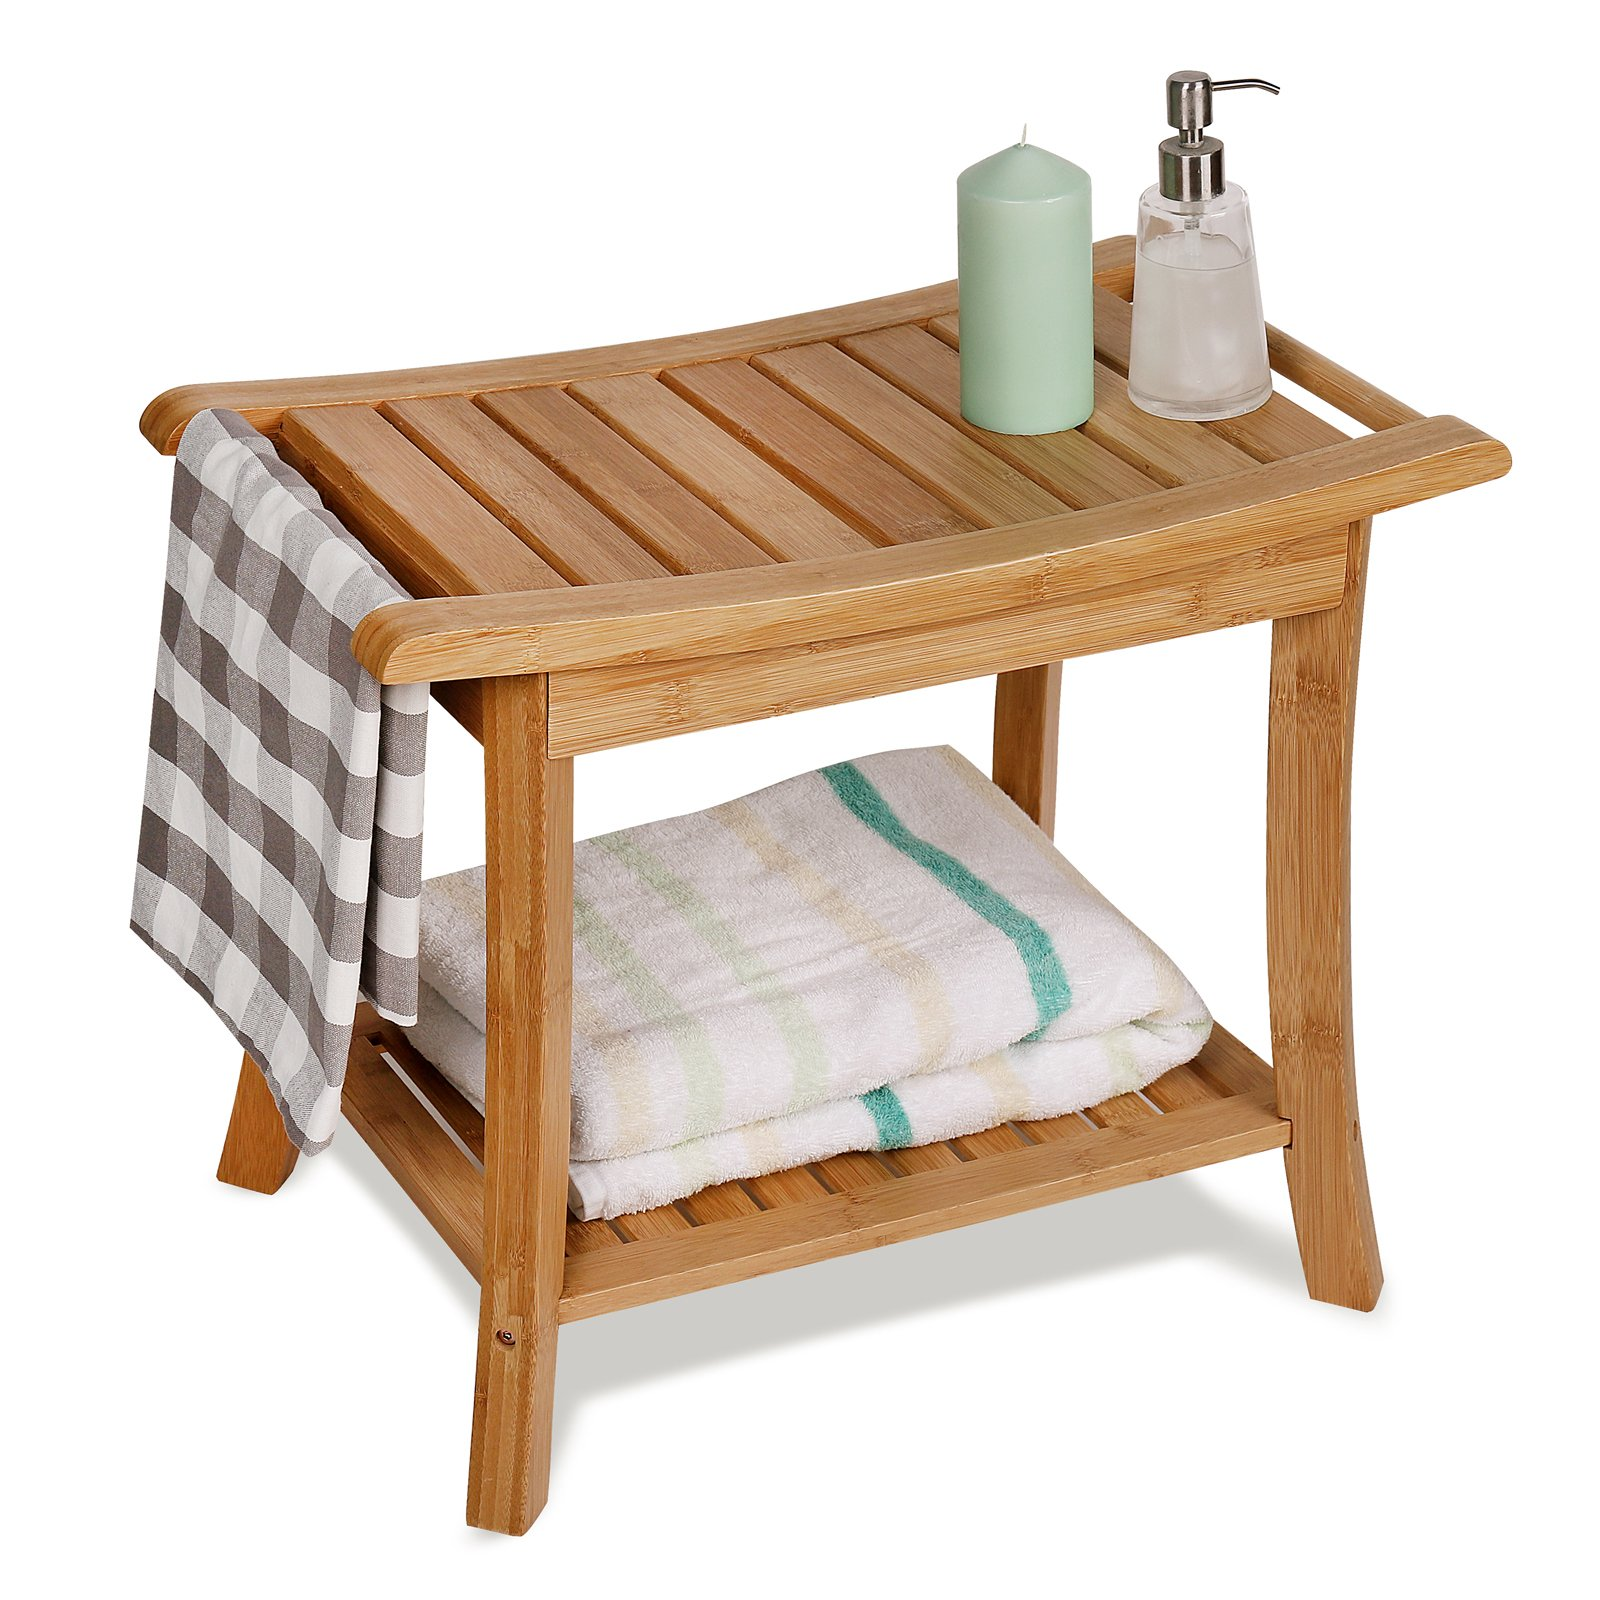 WELLAND 24'' Length Shower Bench with Storage Shelf, Bamboo Shower Seat Stool Large, 24'' x 13'' x 18''